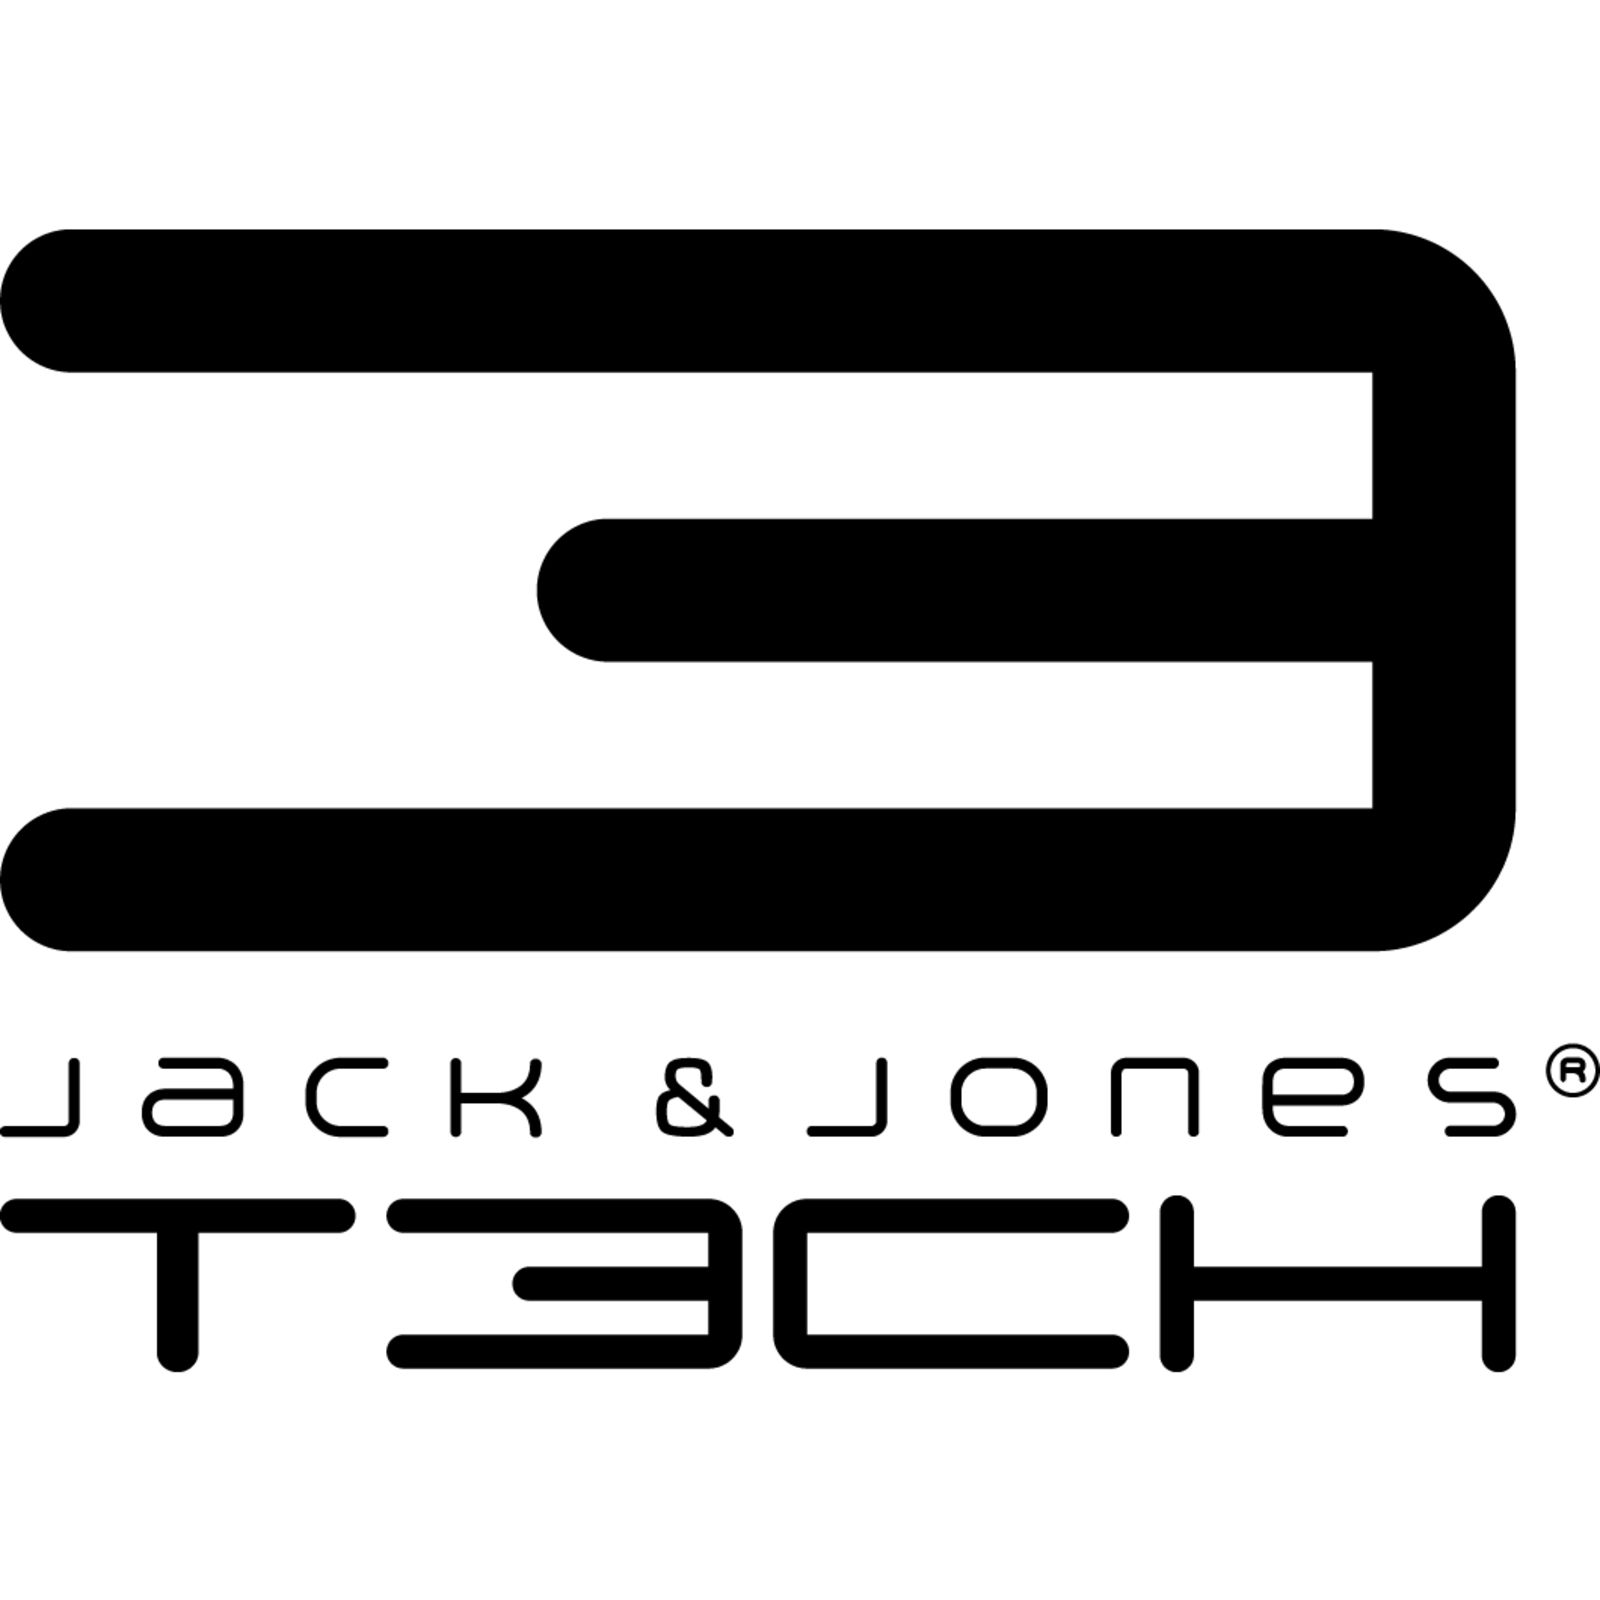 JACK & JONES | TECH (Bild 1)